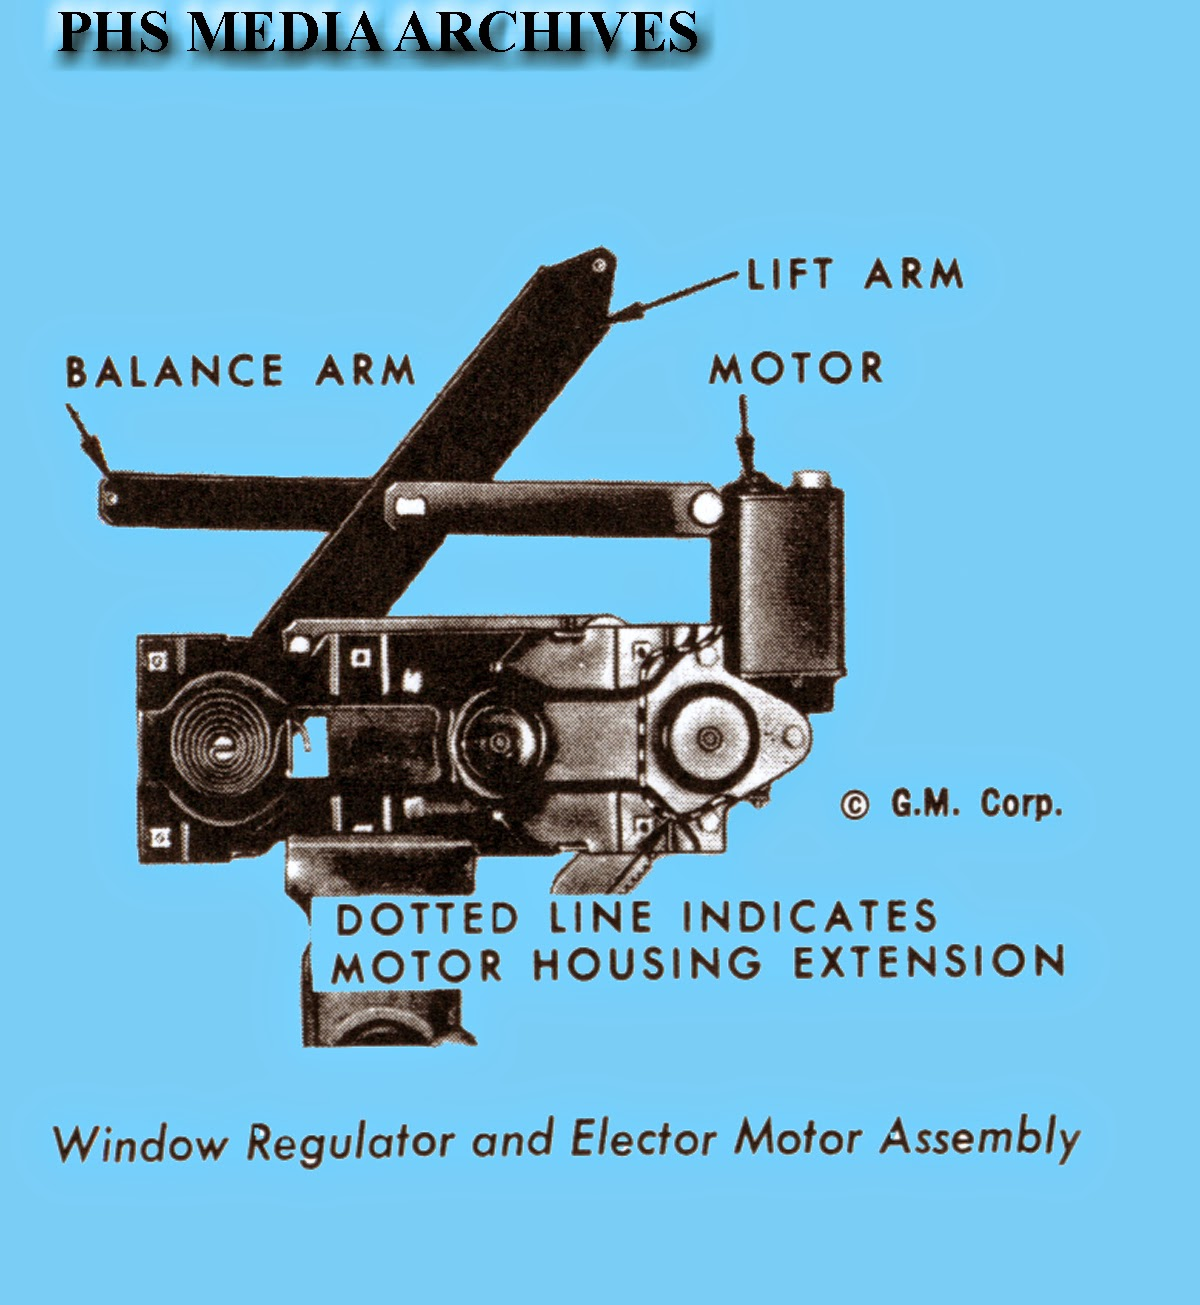 medium resolution of this is what the power window motor looks like when attached to lift and balance arms